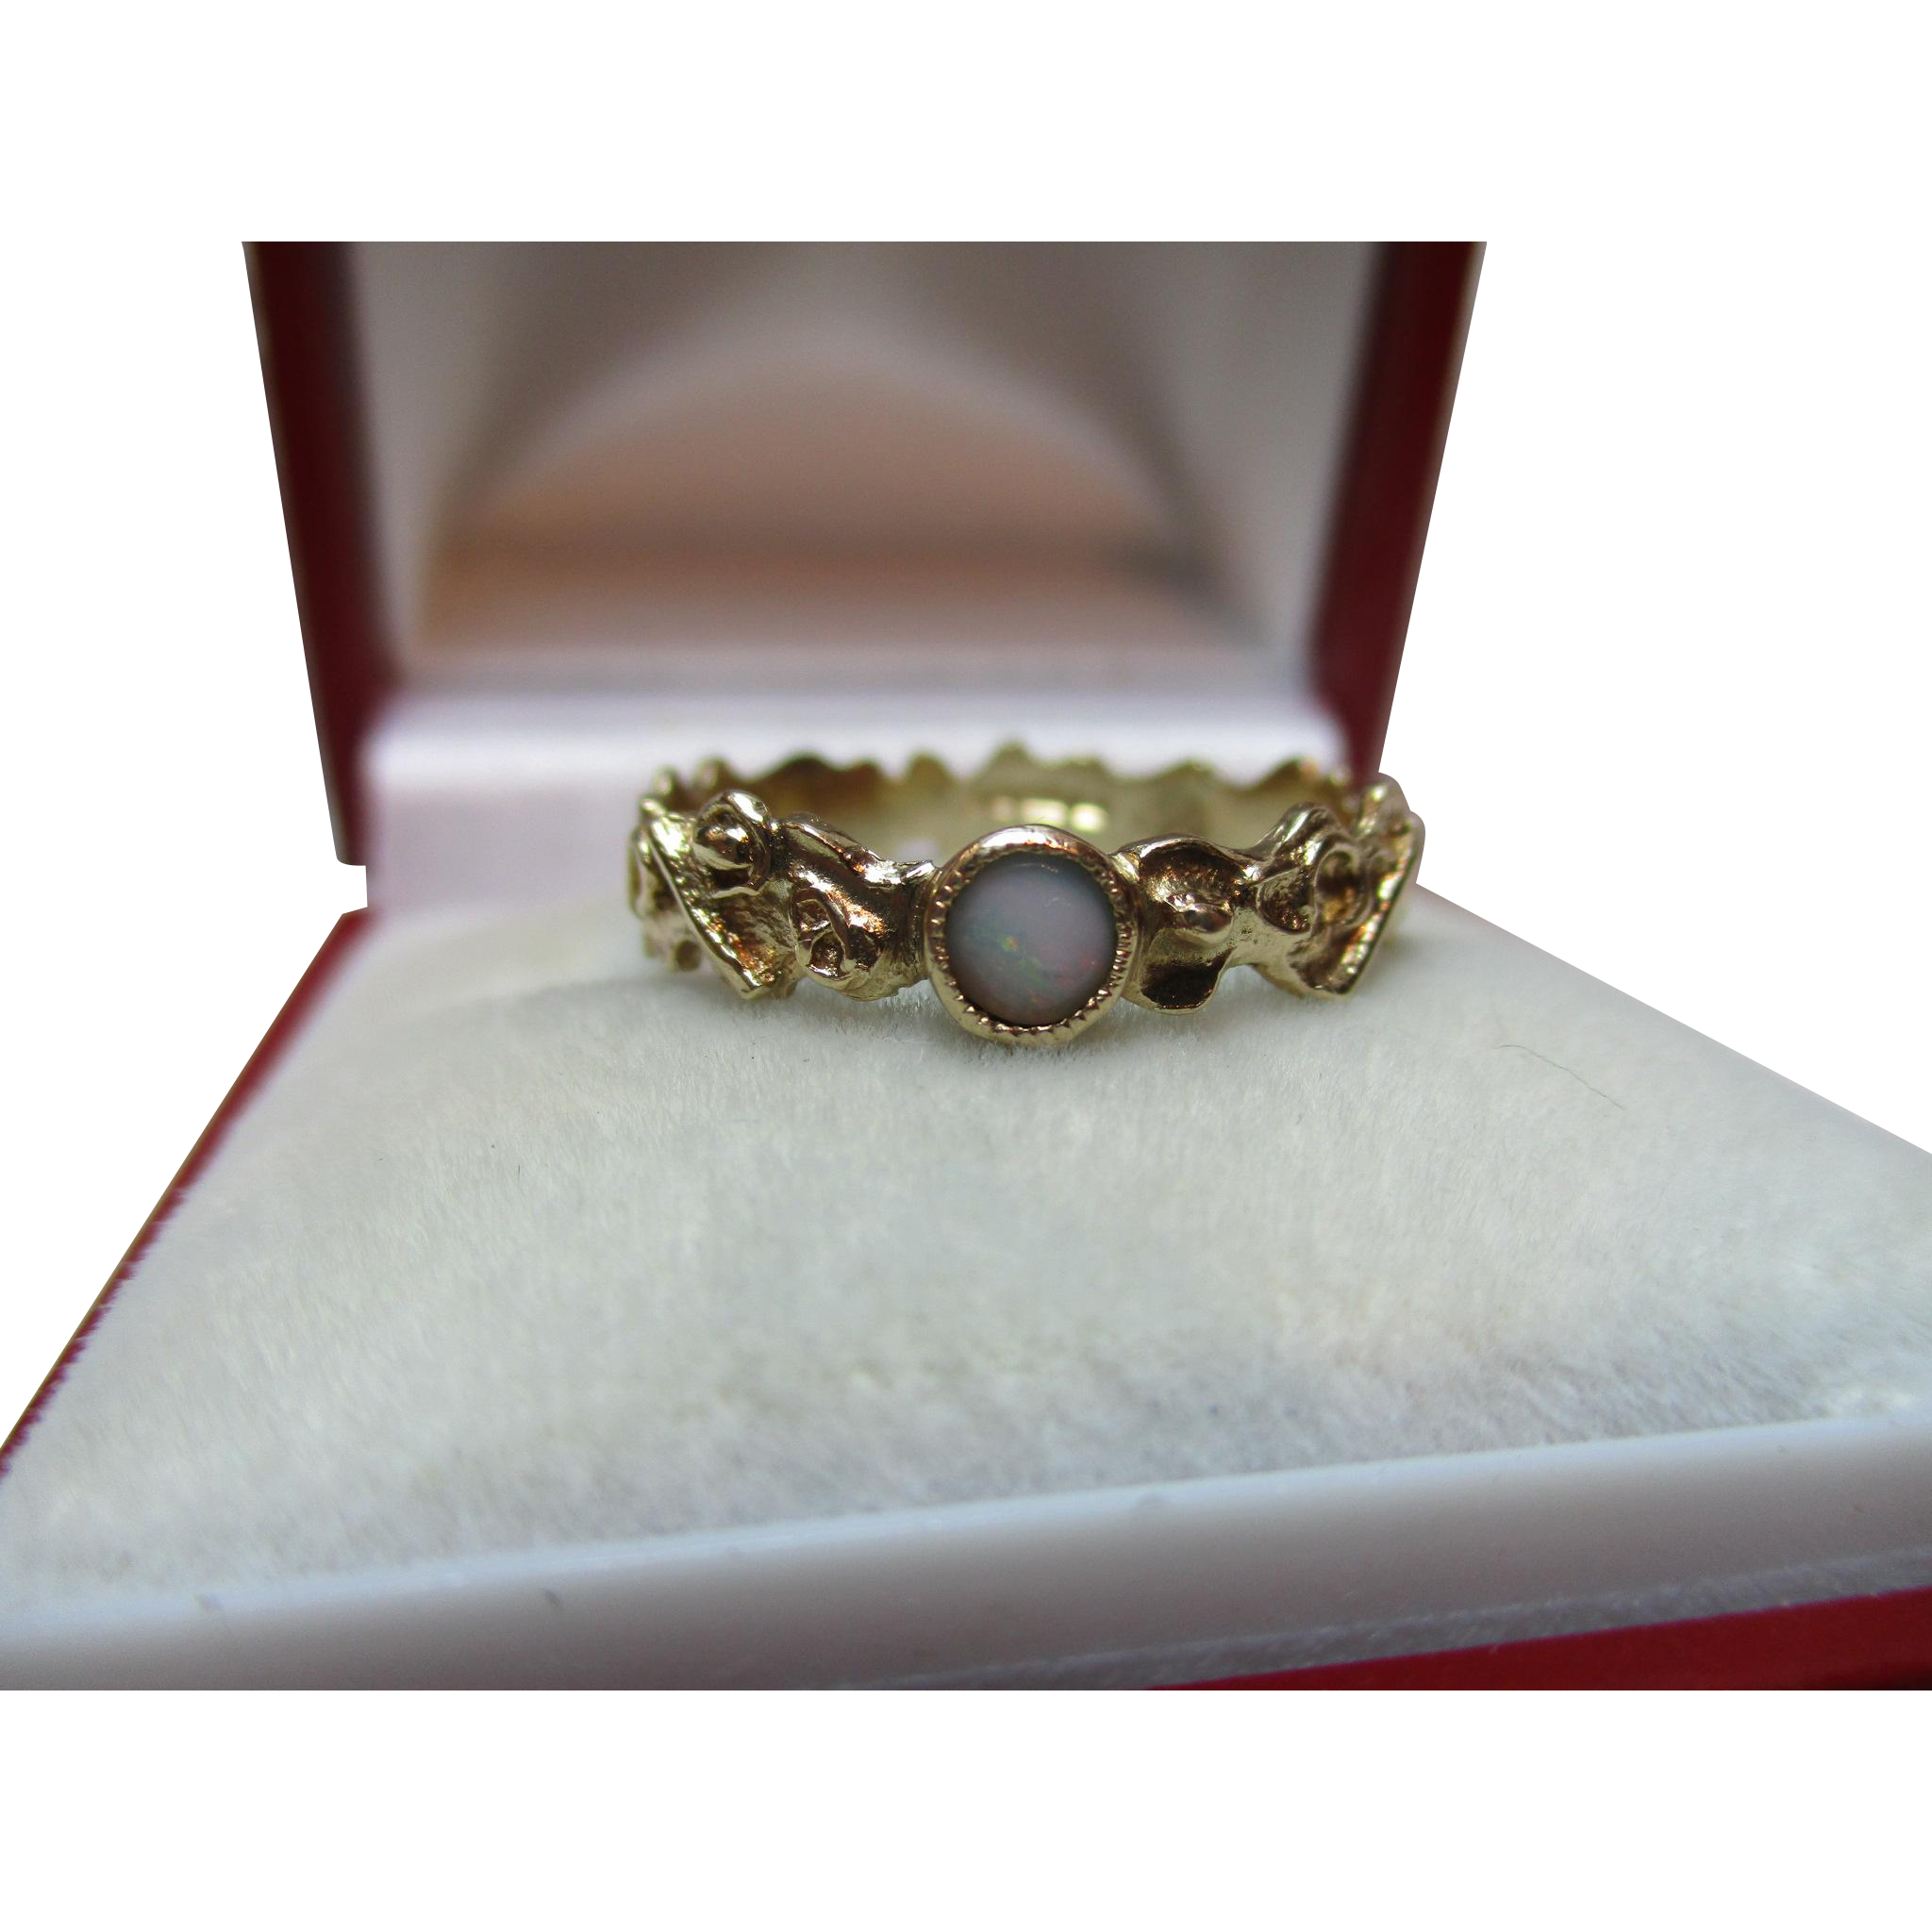 'Scalloped' Vintage{Birmingham 1977} 9ct Solid Gold Opal Solitaire Gemstone Ring